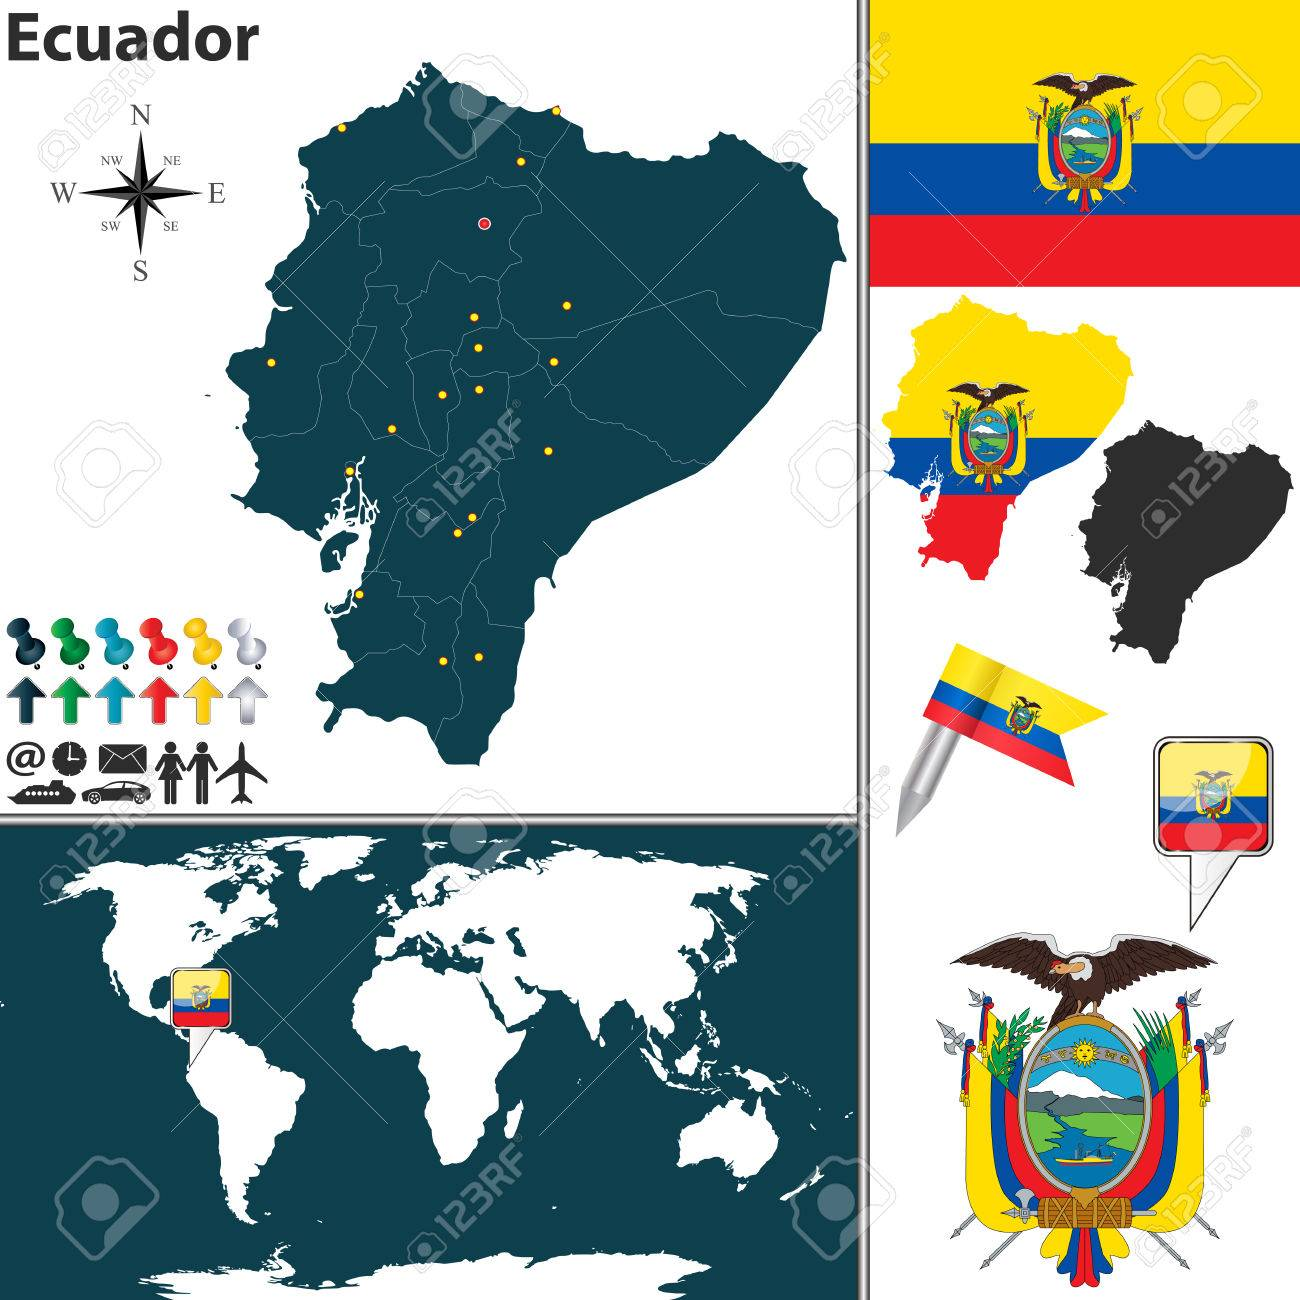 Location Of Ecuador On World Map.Map Of Ecuador With Regions Coat Of Arms And Location On World